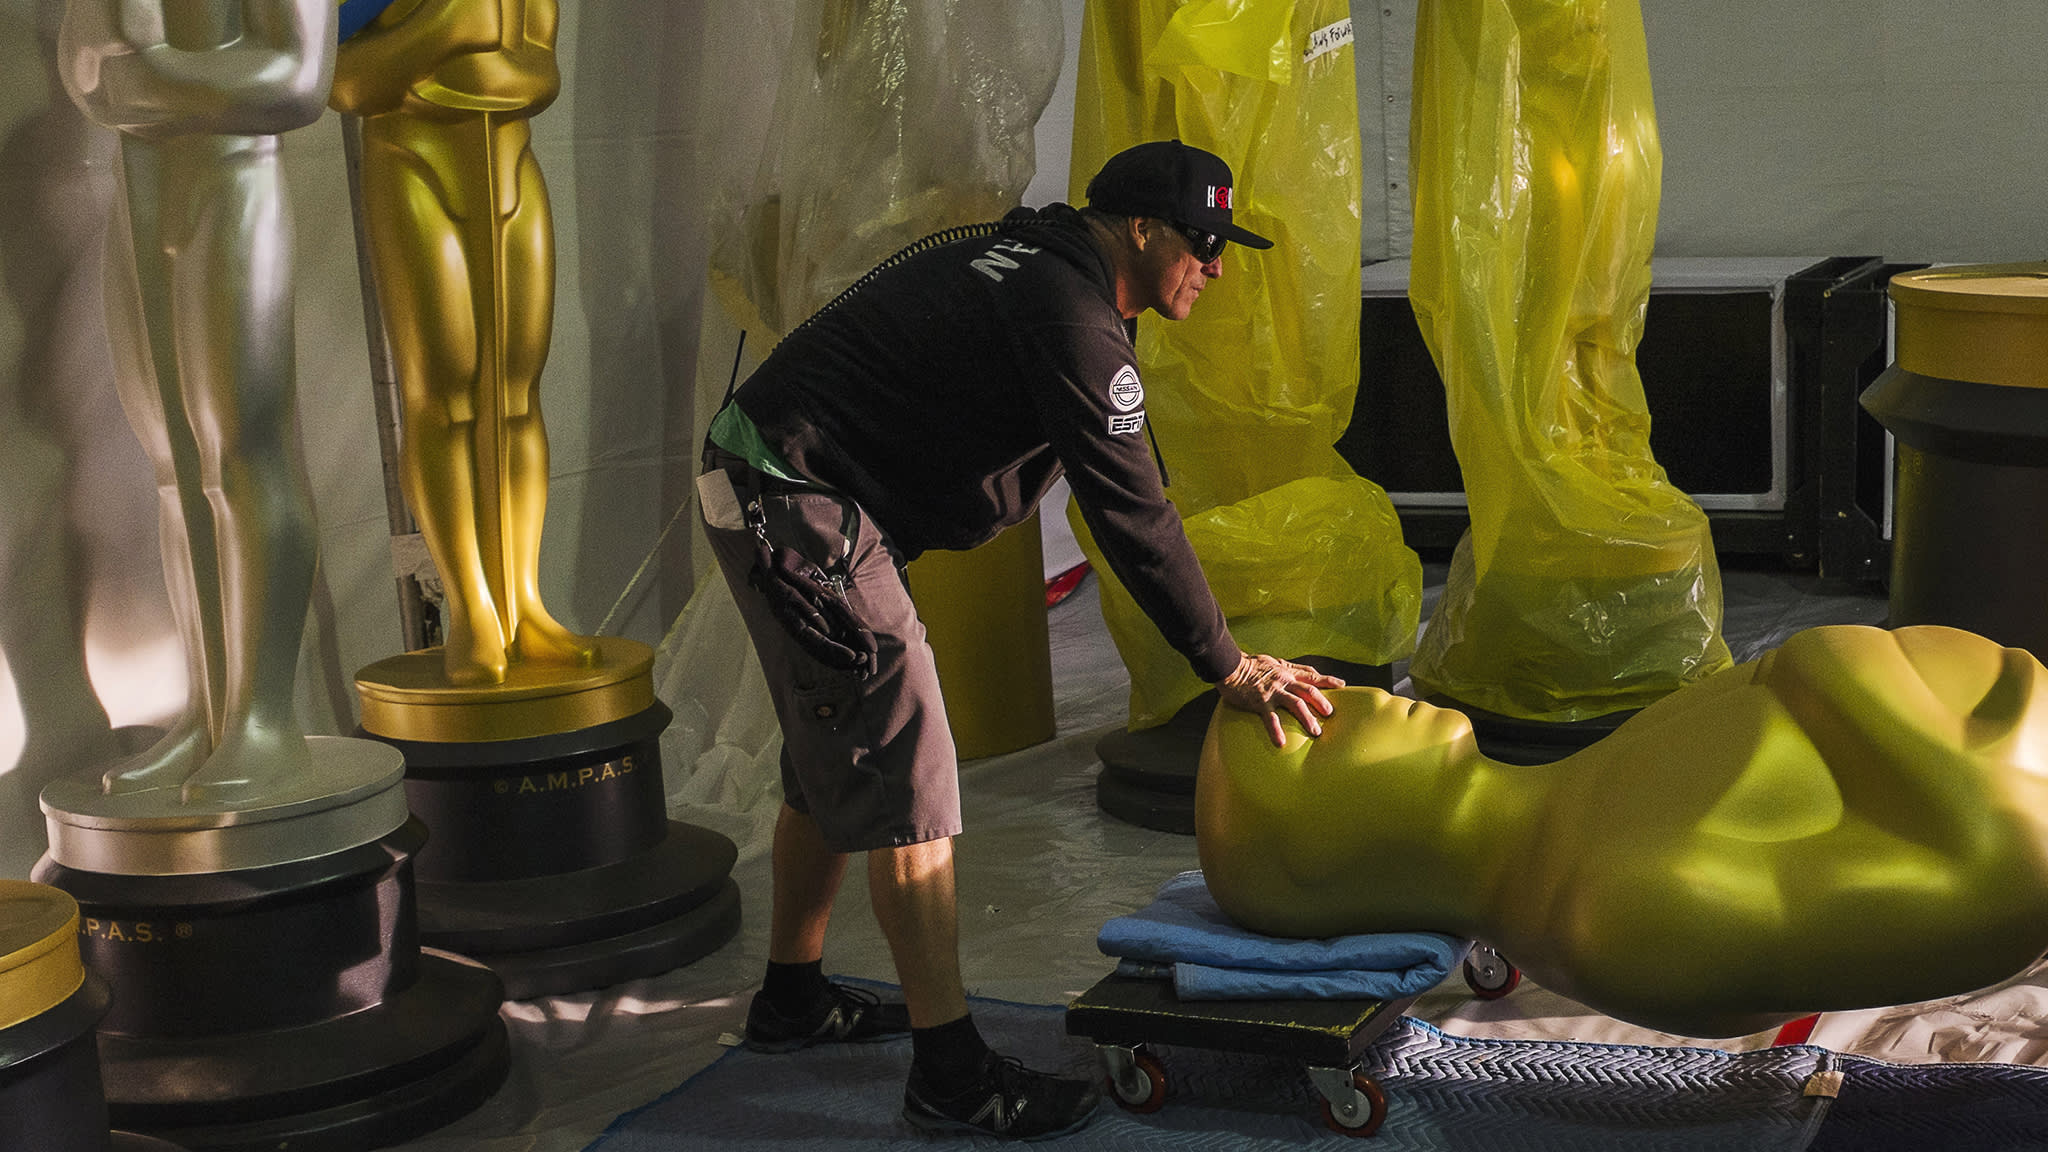 Should we care about the Oscars any more?